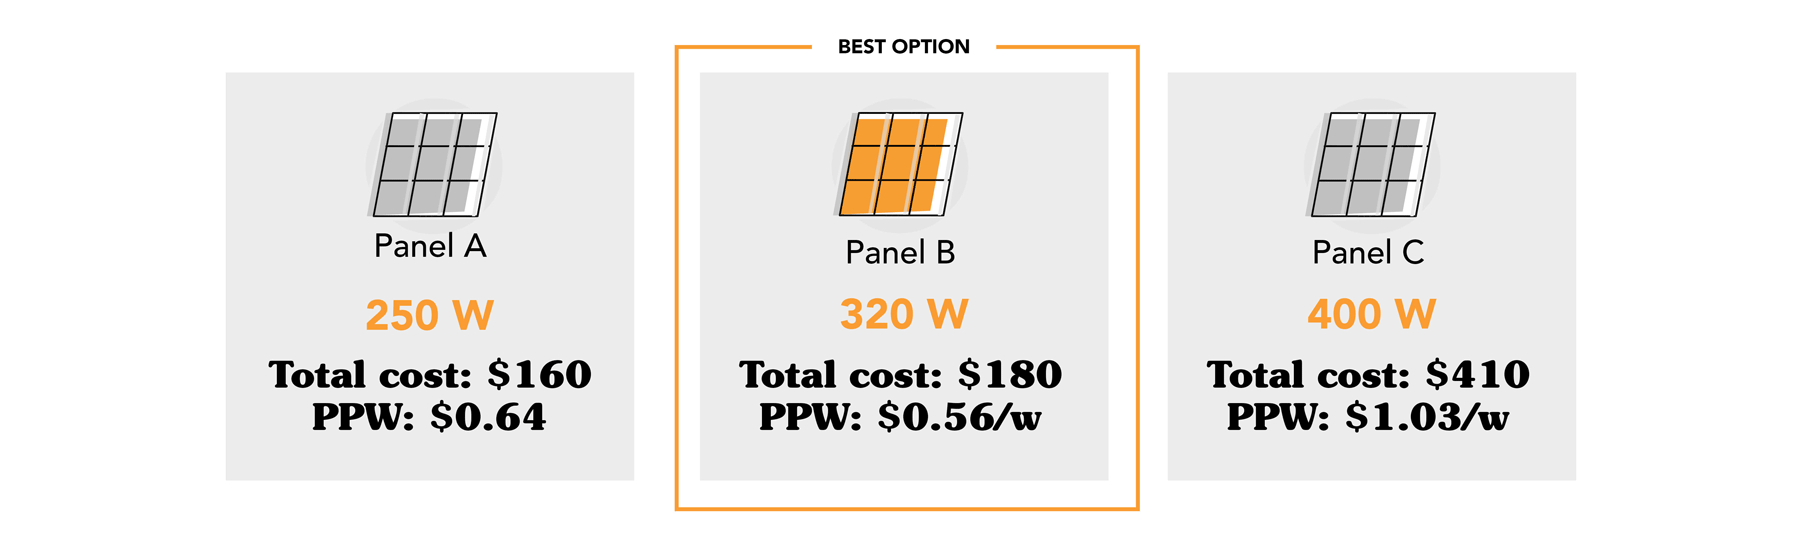 image comparing cost per watt of different panels